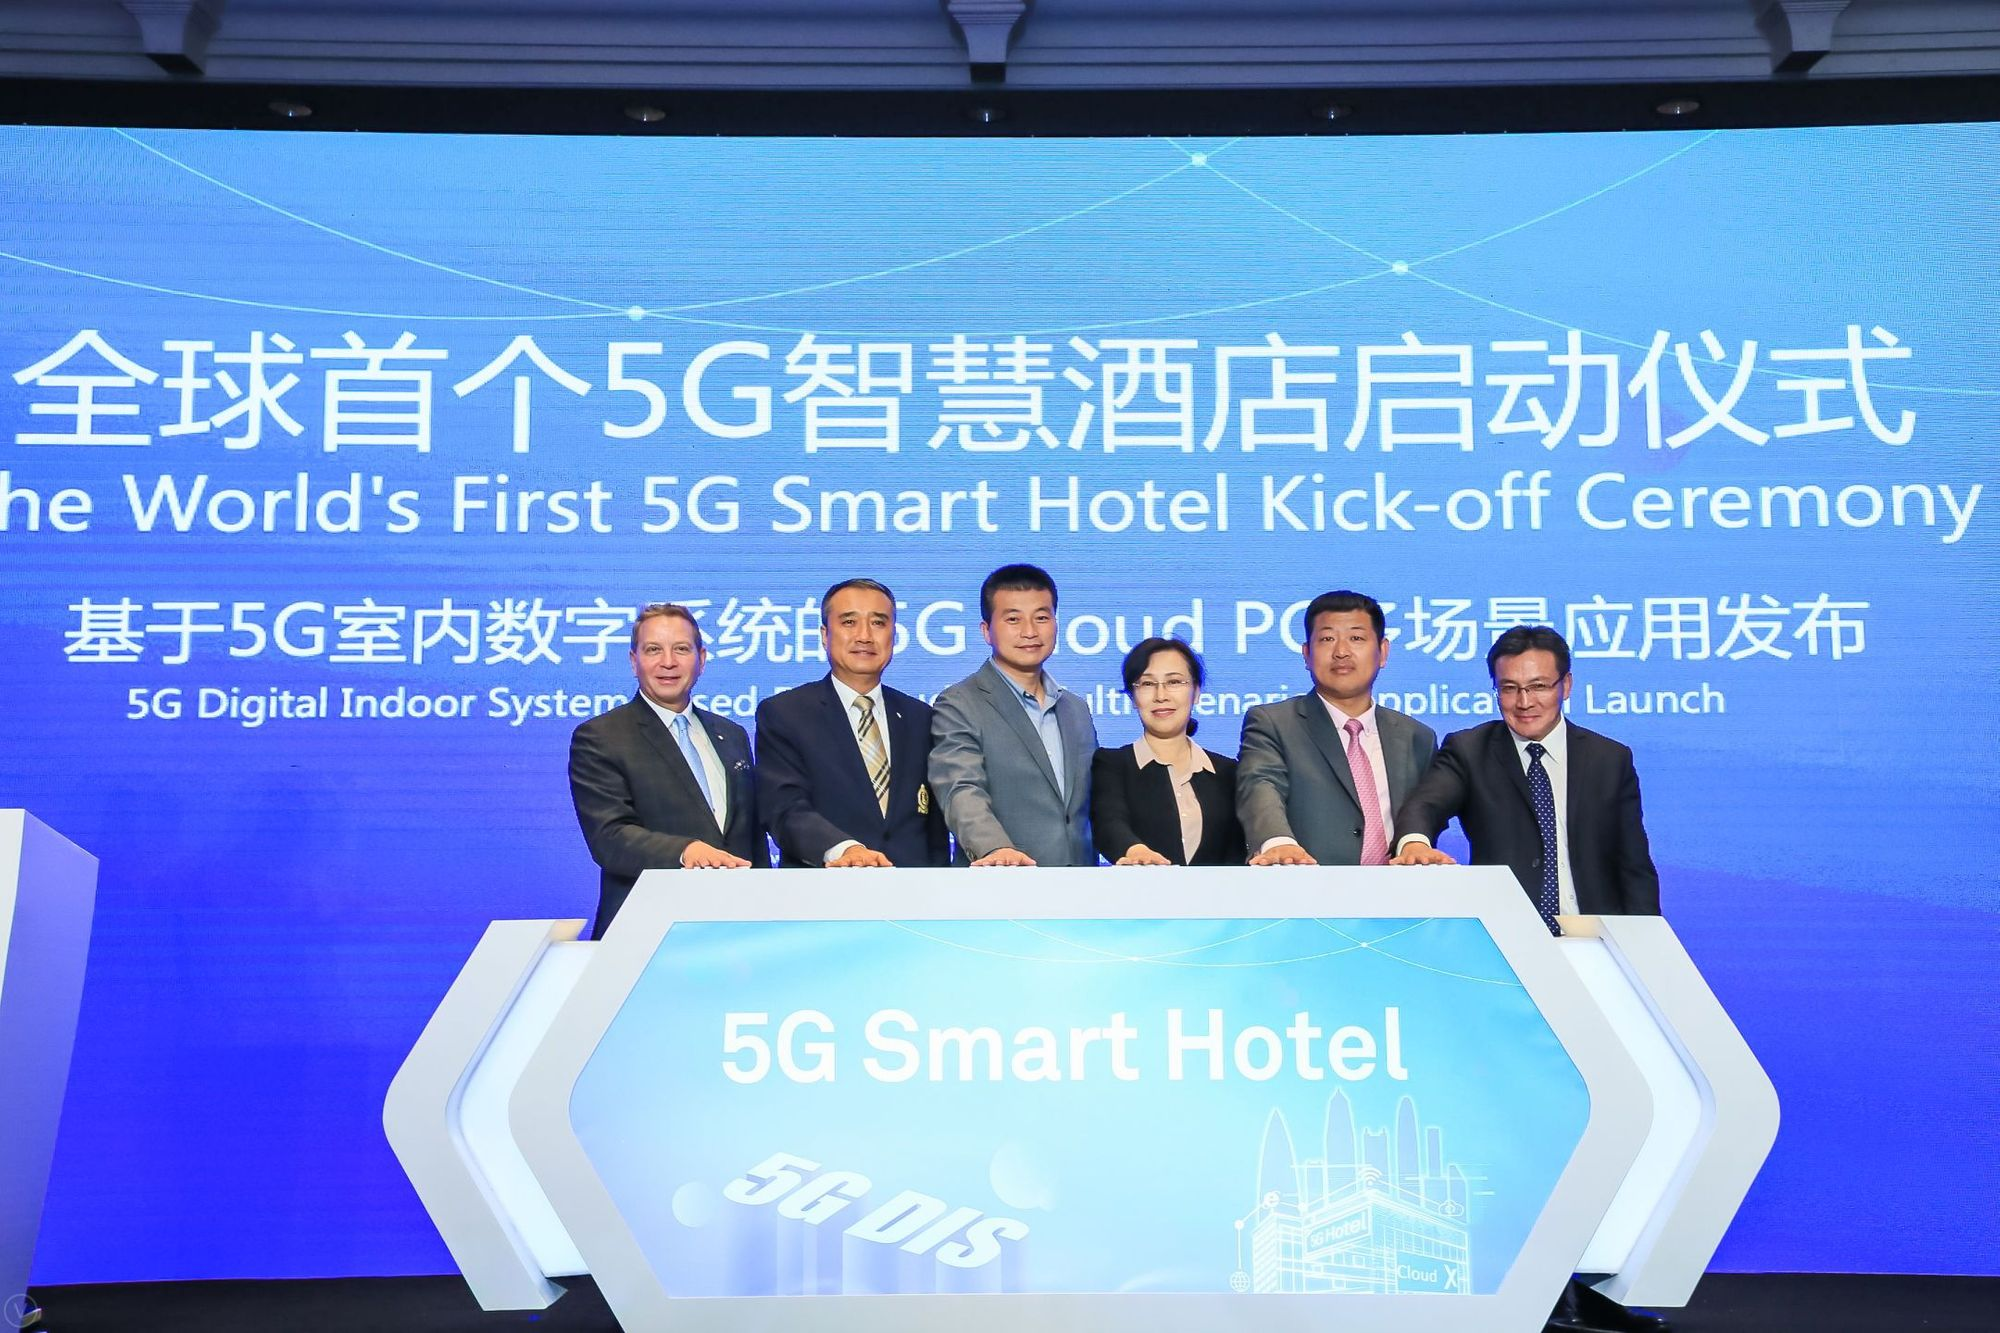 InterContinental Shenzhen to Become the World's First 5G Smart Hotel